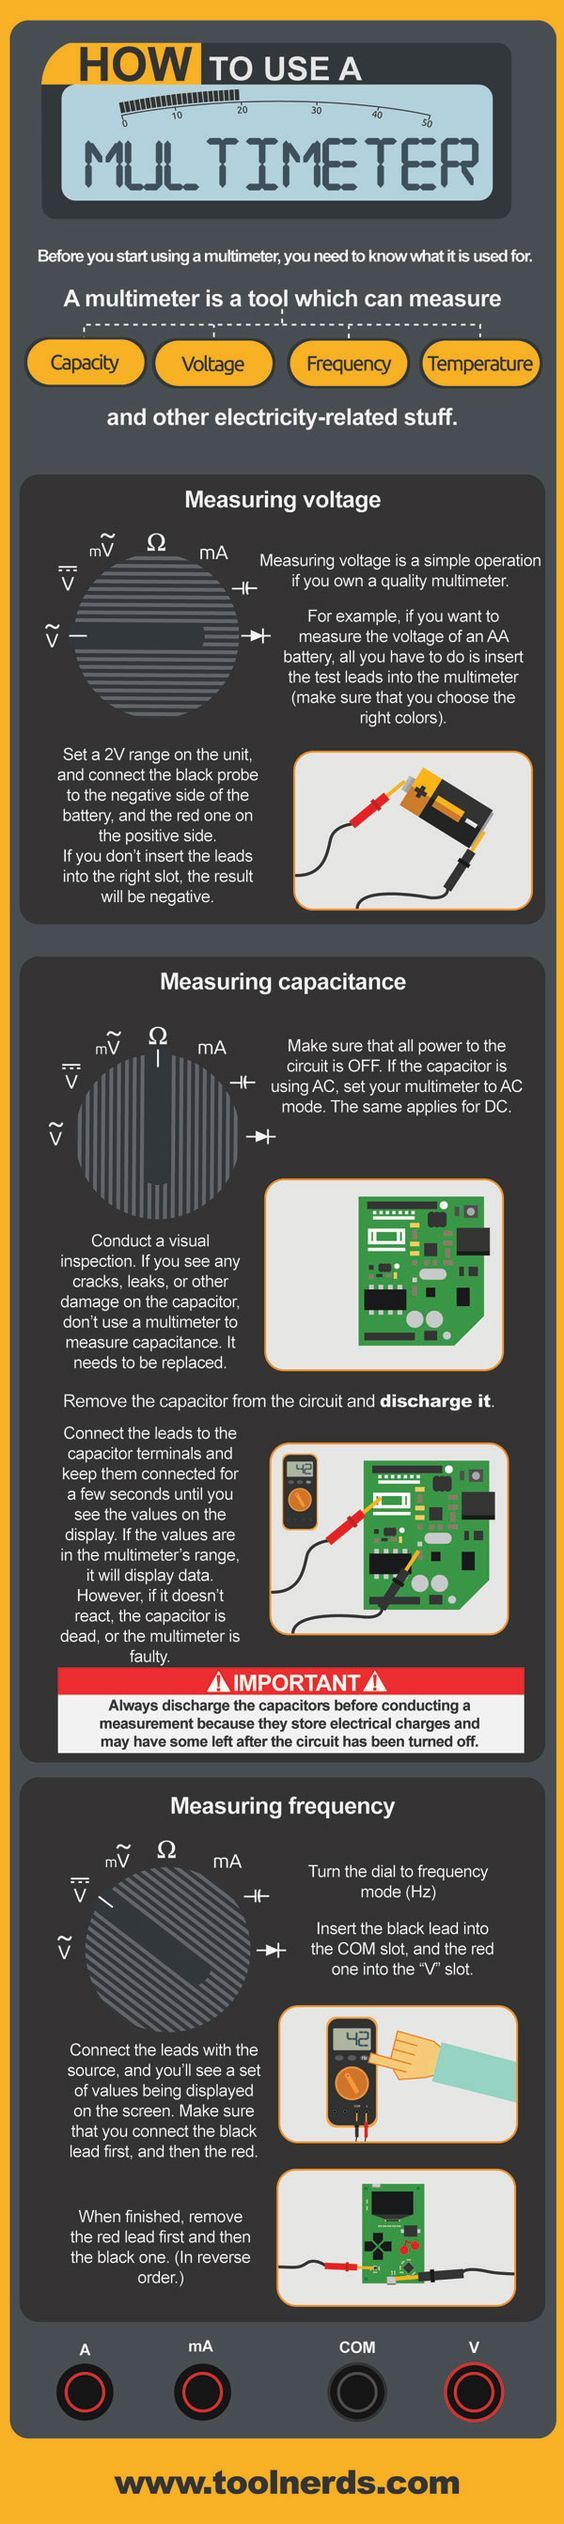 Read our latest article How to use multimeter on http://ift.tt/2lptYjq